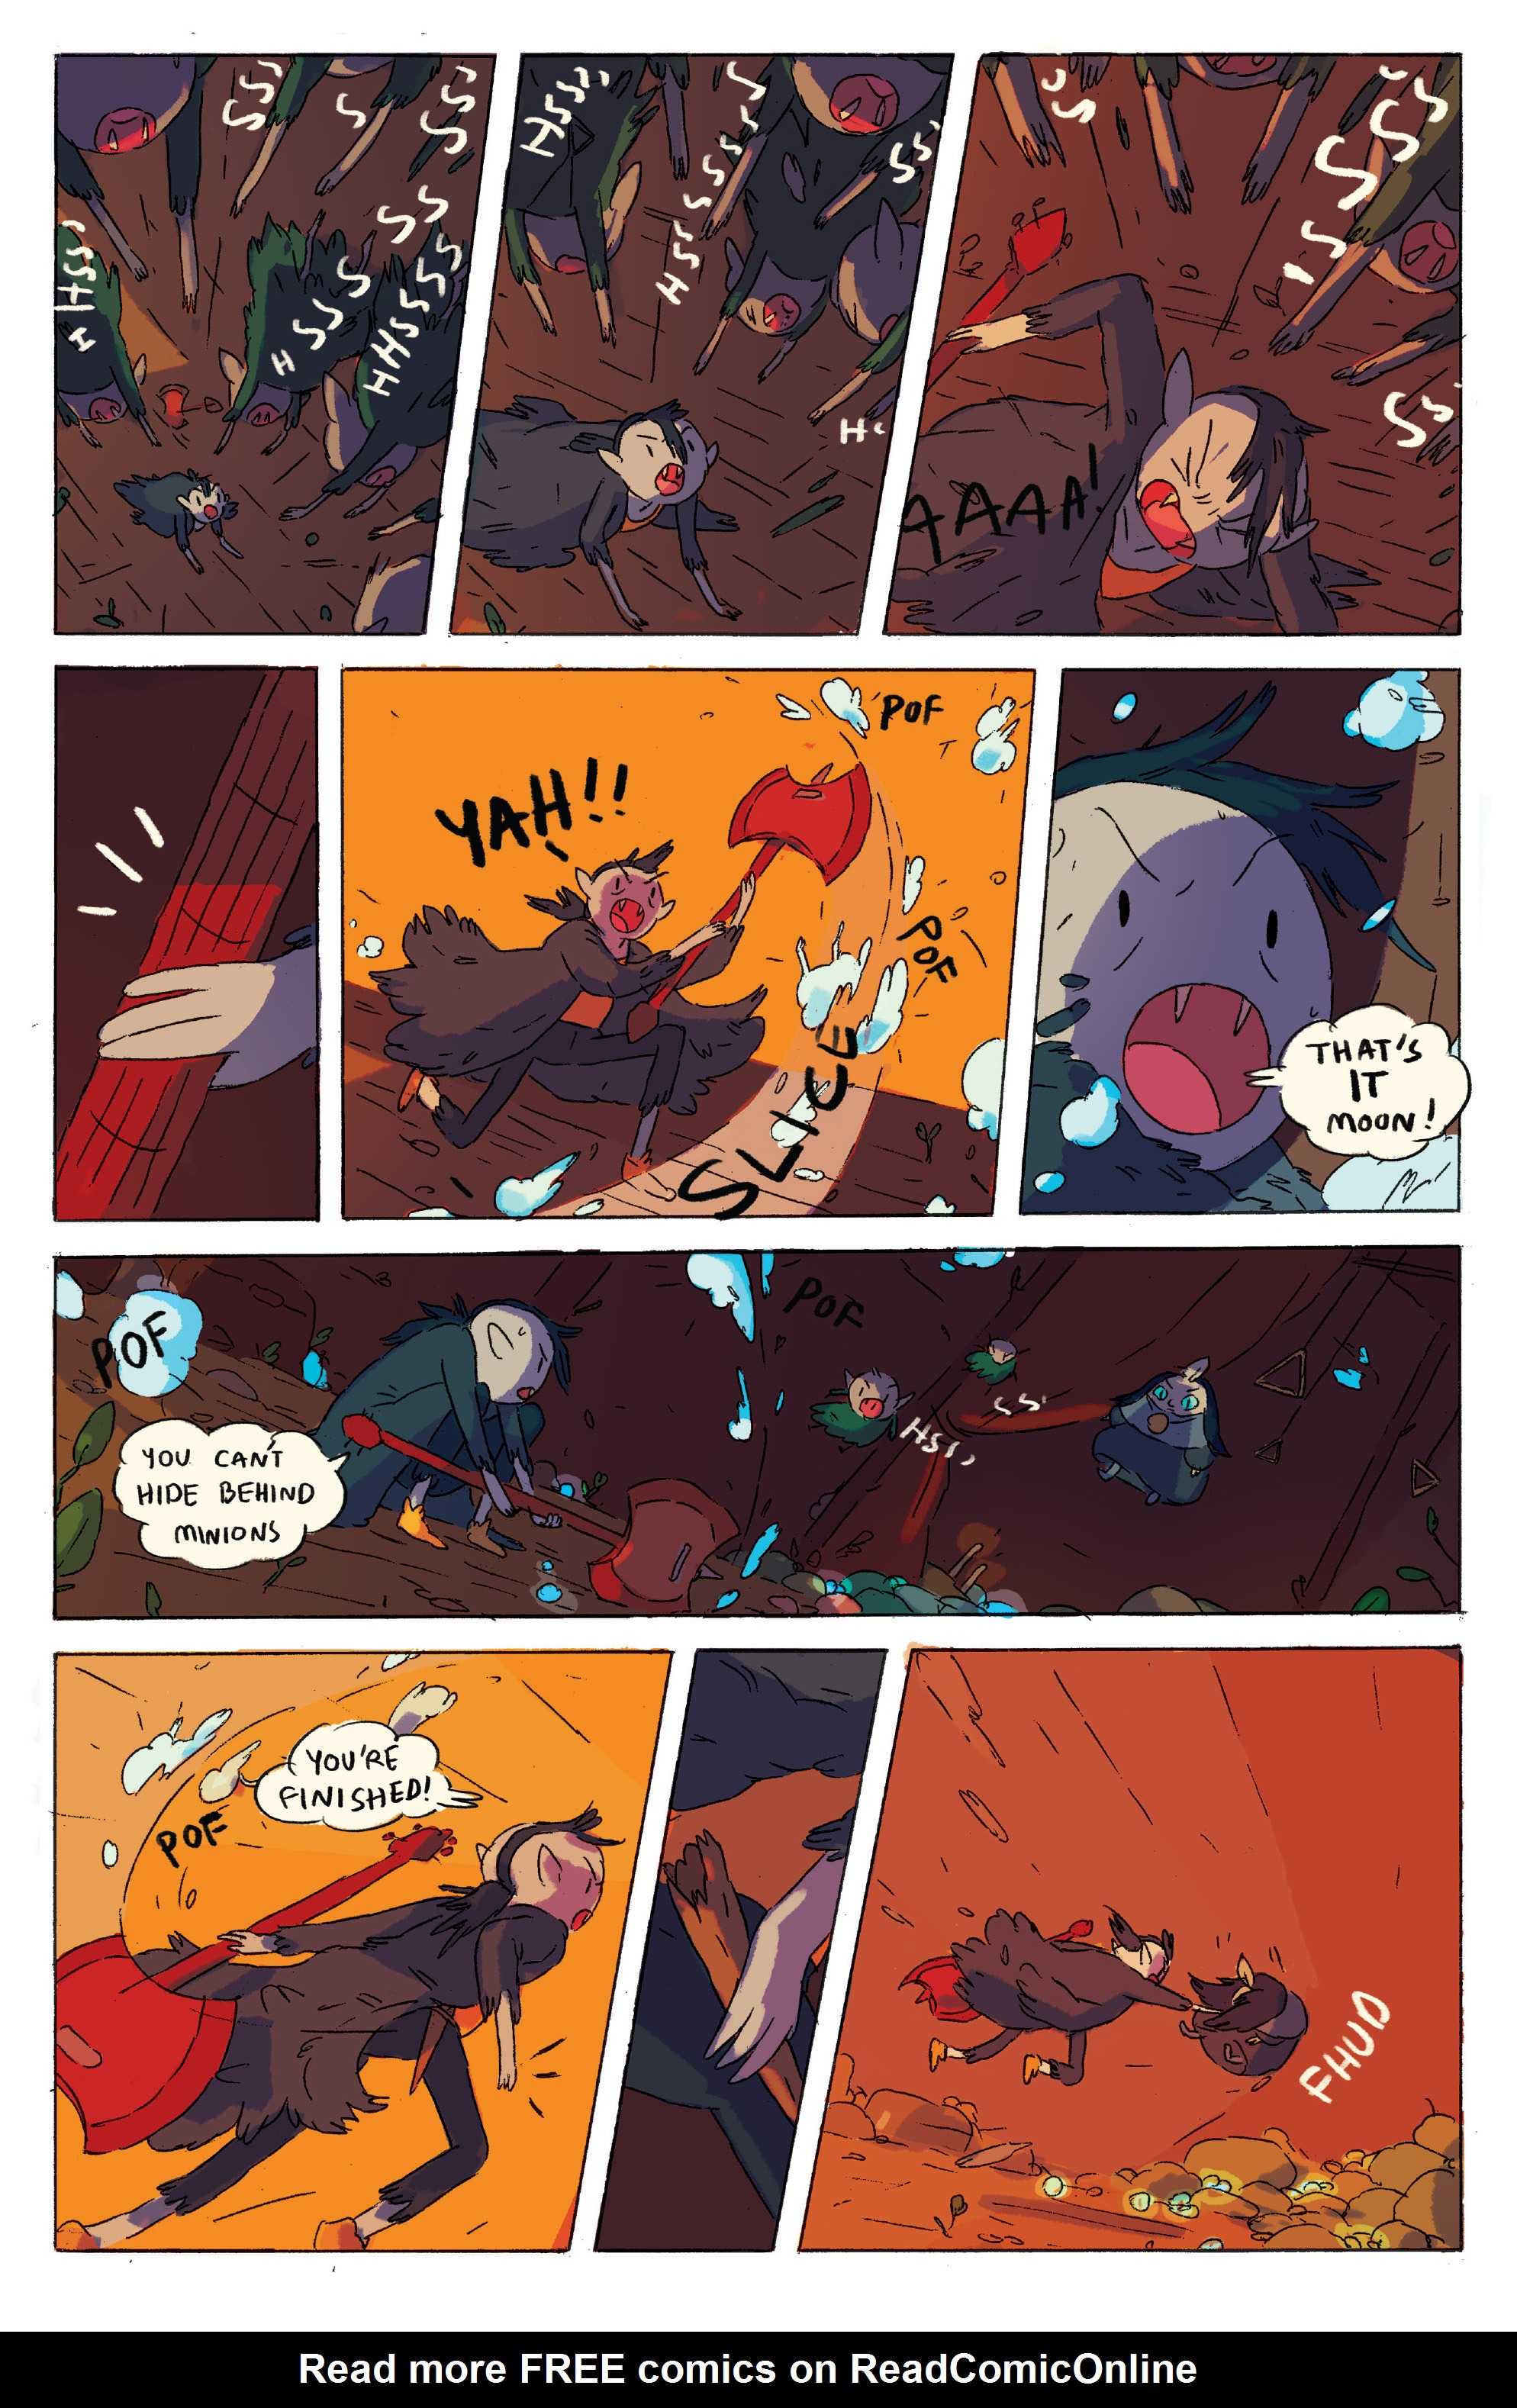 Read online Adventure Time comic -  Issue # _2015 Spoooktacular - 27